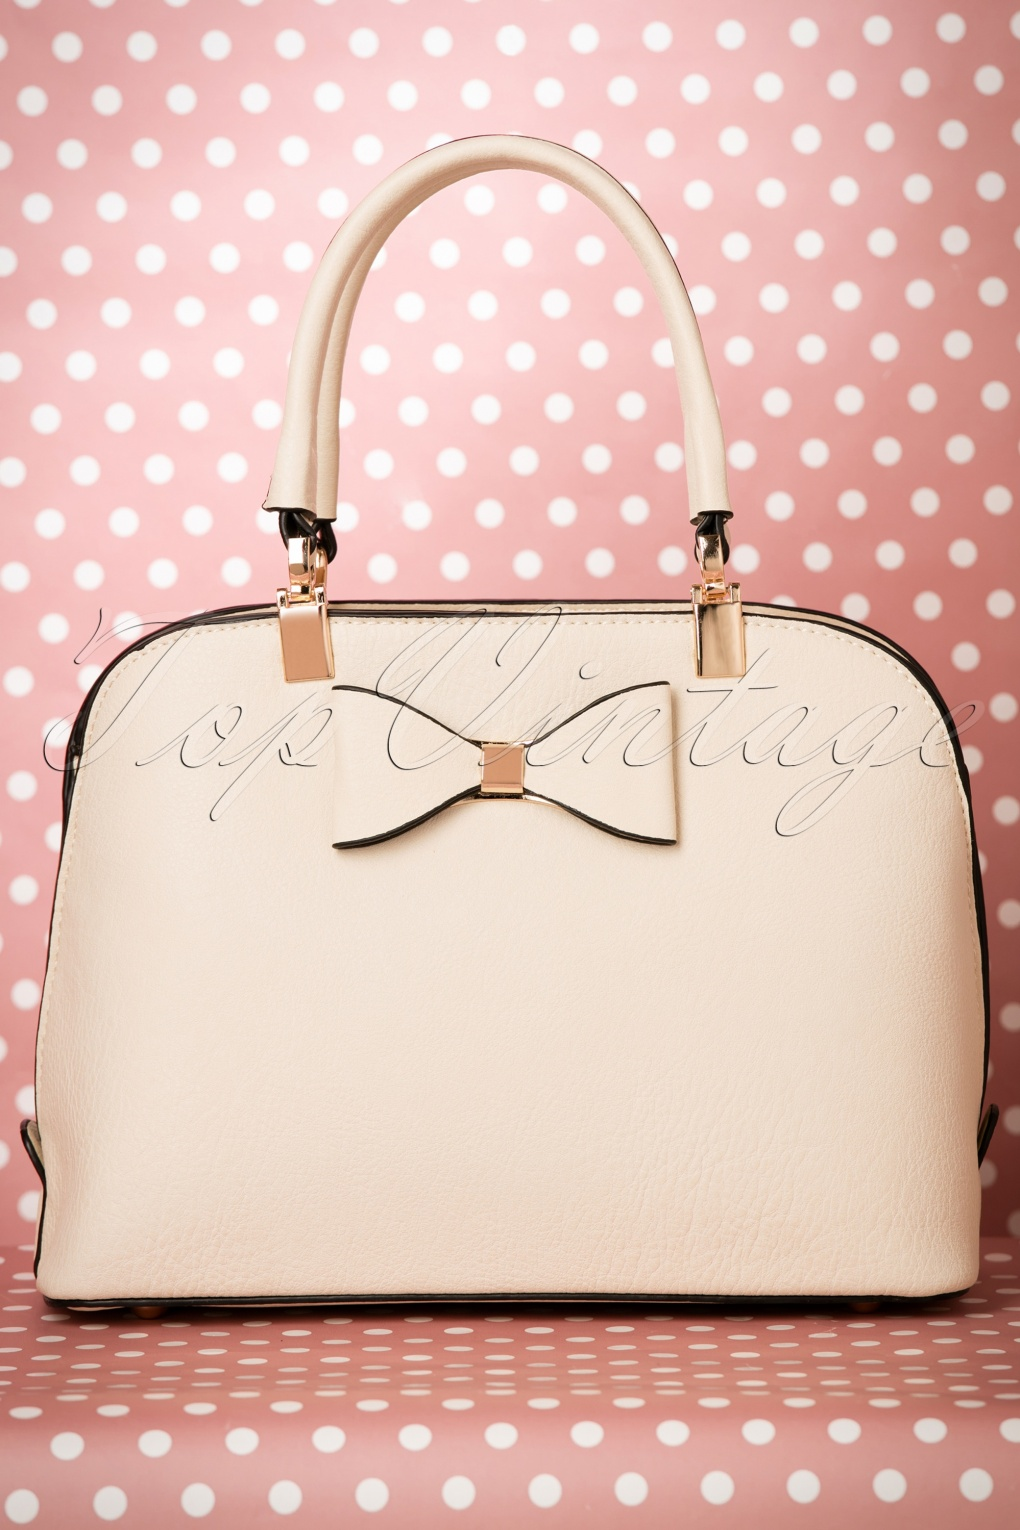 Retro Handbags, Purses, Wallets, Bags 60s Betty Bow Handbag in Beige £38.37 AT vintagedancer.com